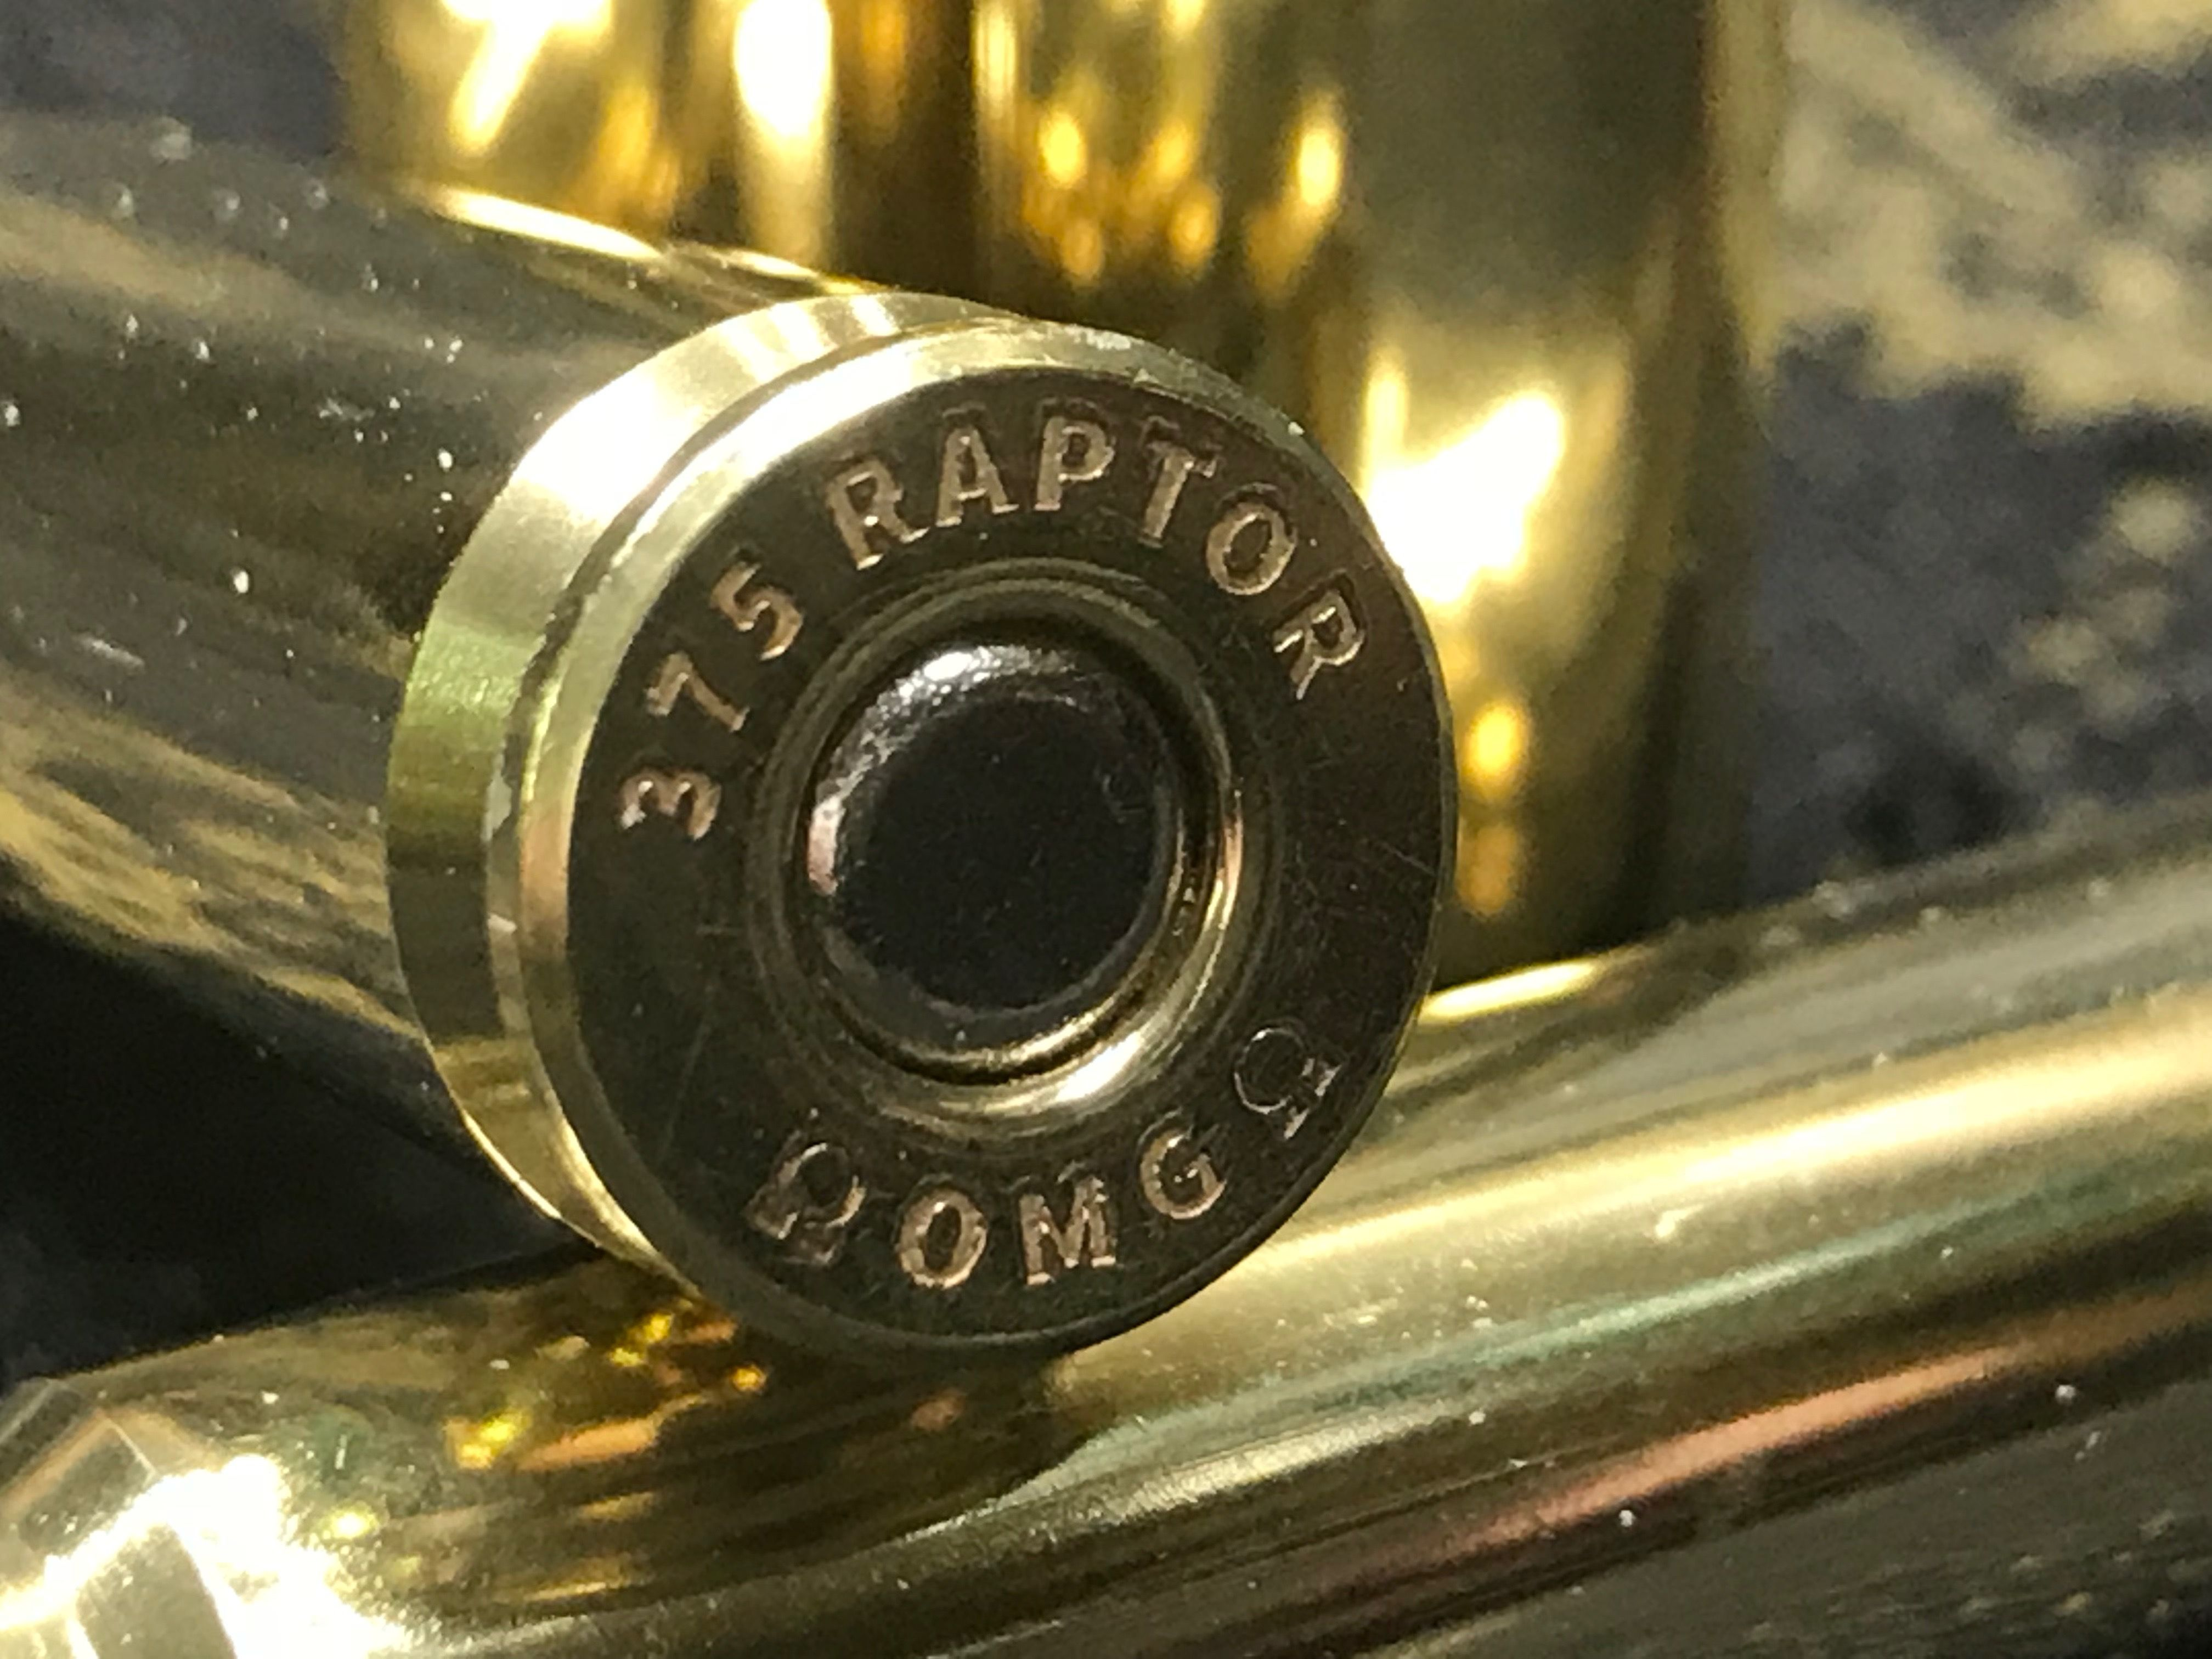 375 RAPTOR new brass courtesy of Omega Rifles | Raptor